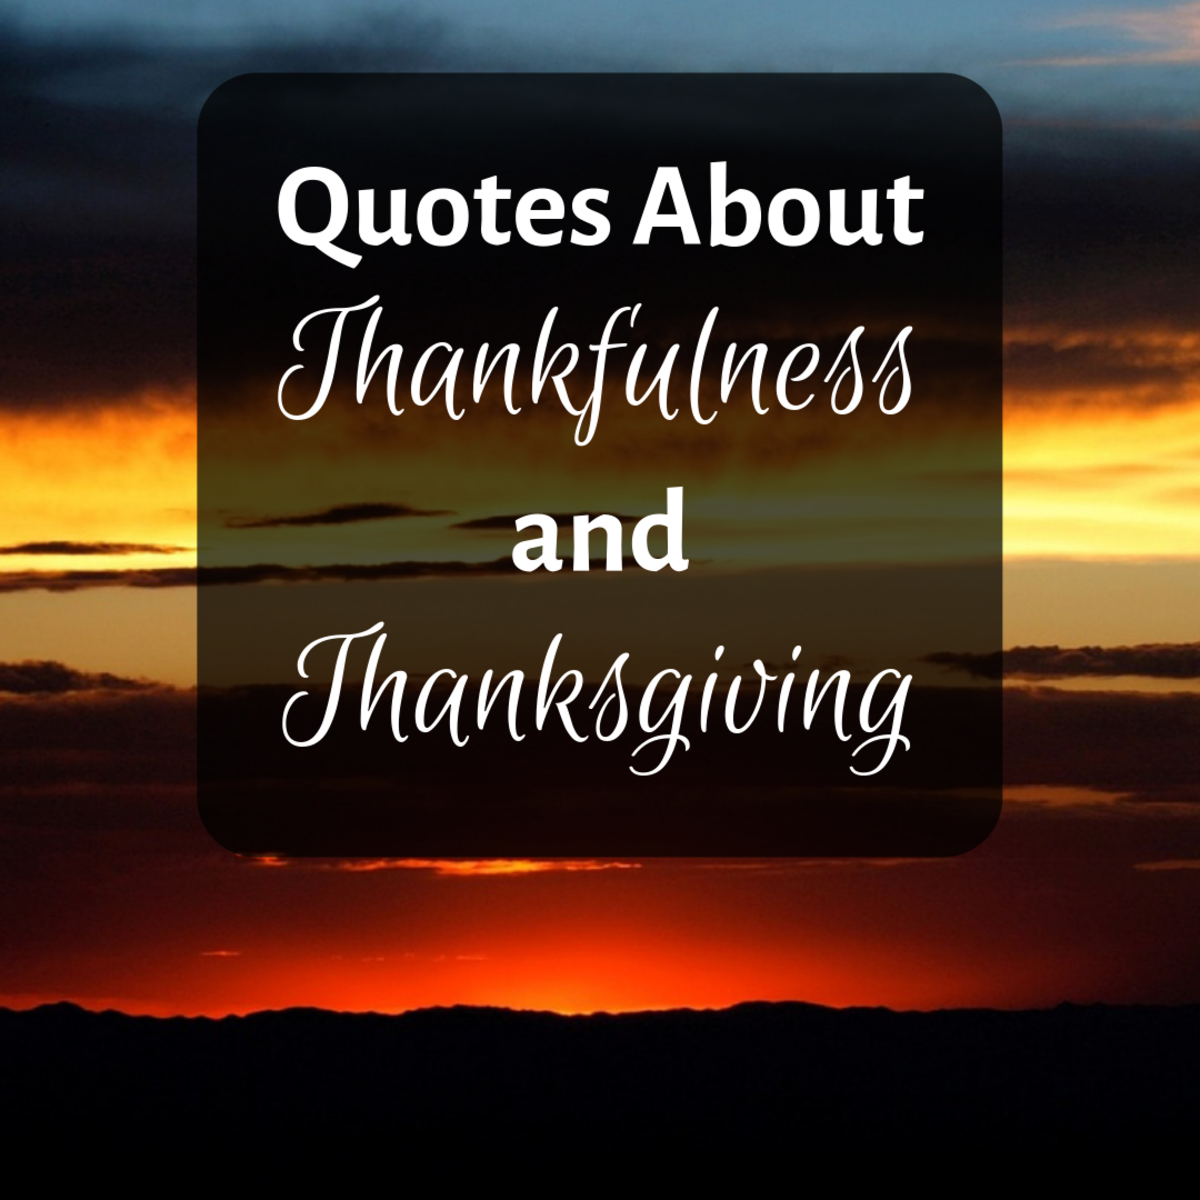 Read through 15 quotes related to gratitude, thankfulness, and thanksgiving.